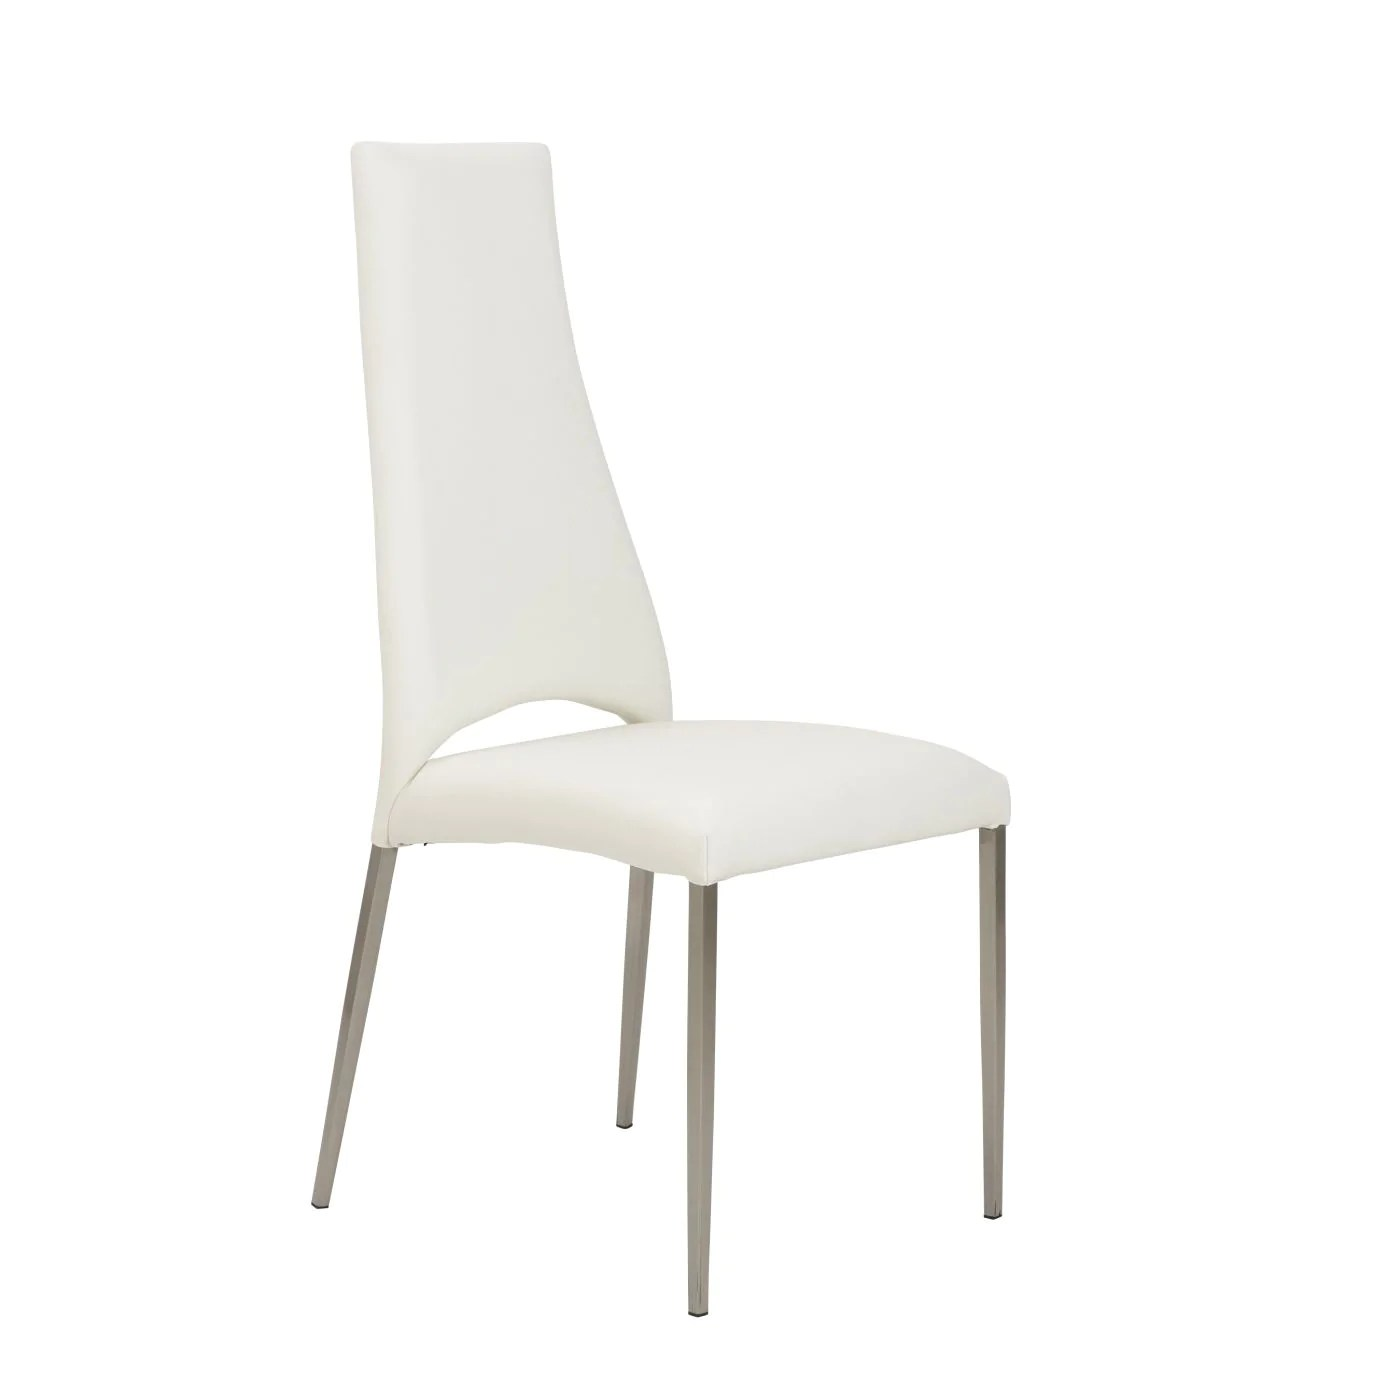 dining chairs with stainless steel legs teak shower chair euro style tara in white leatherette